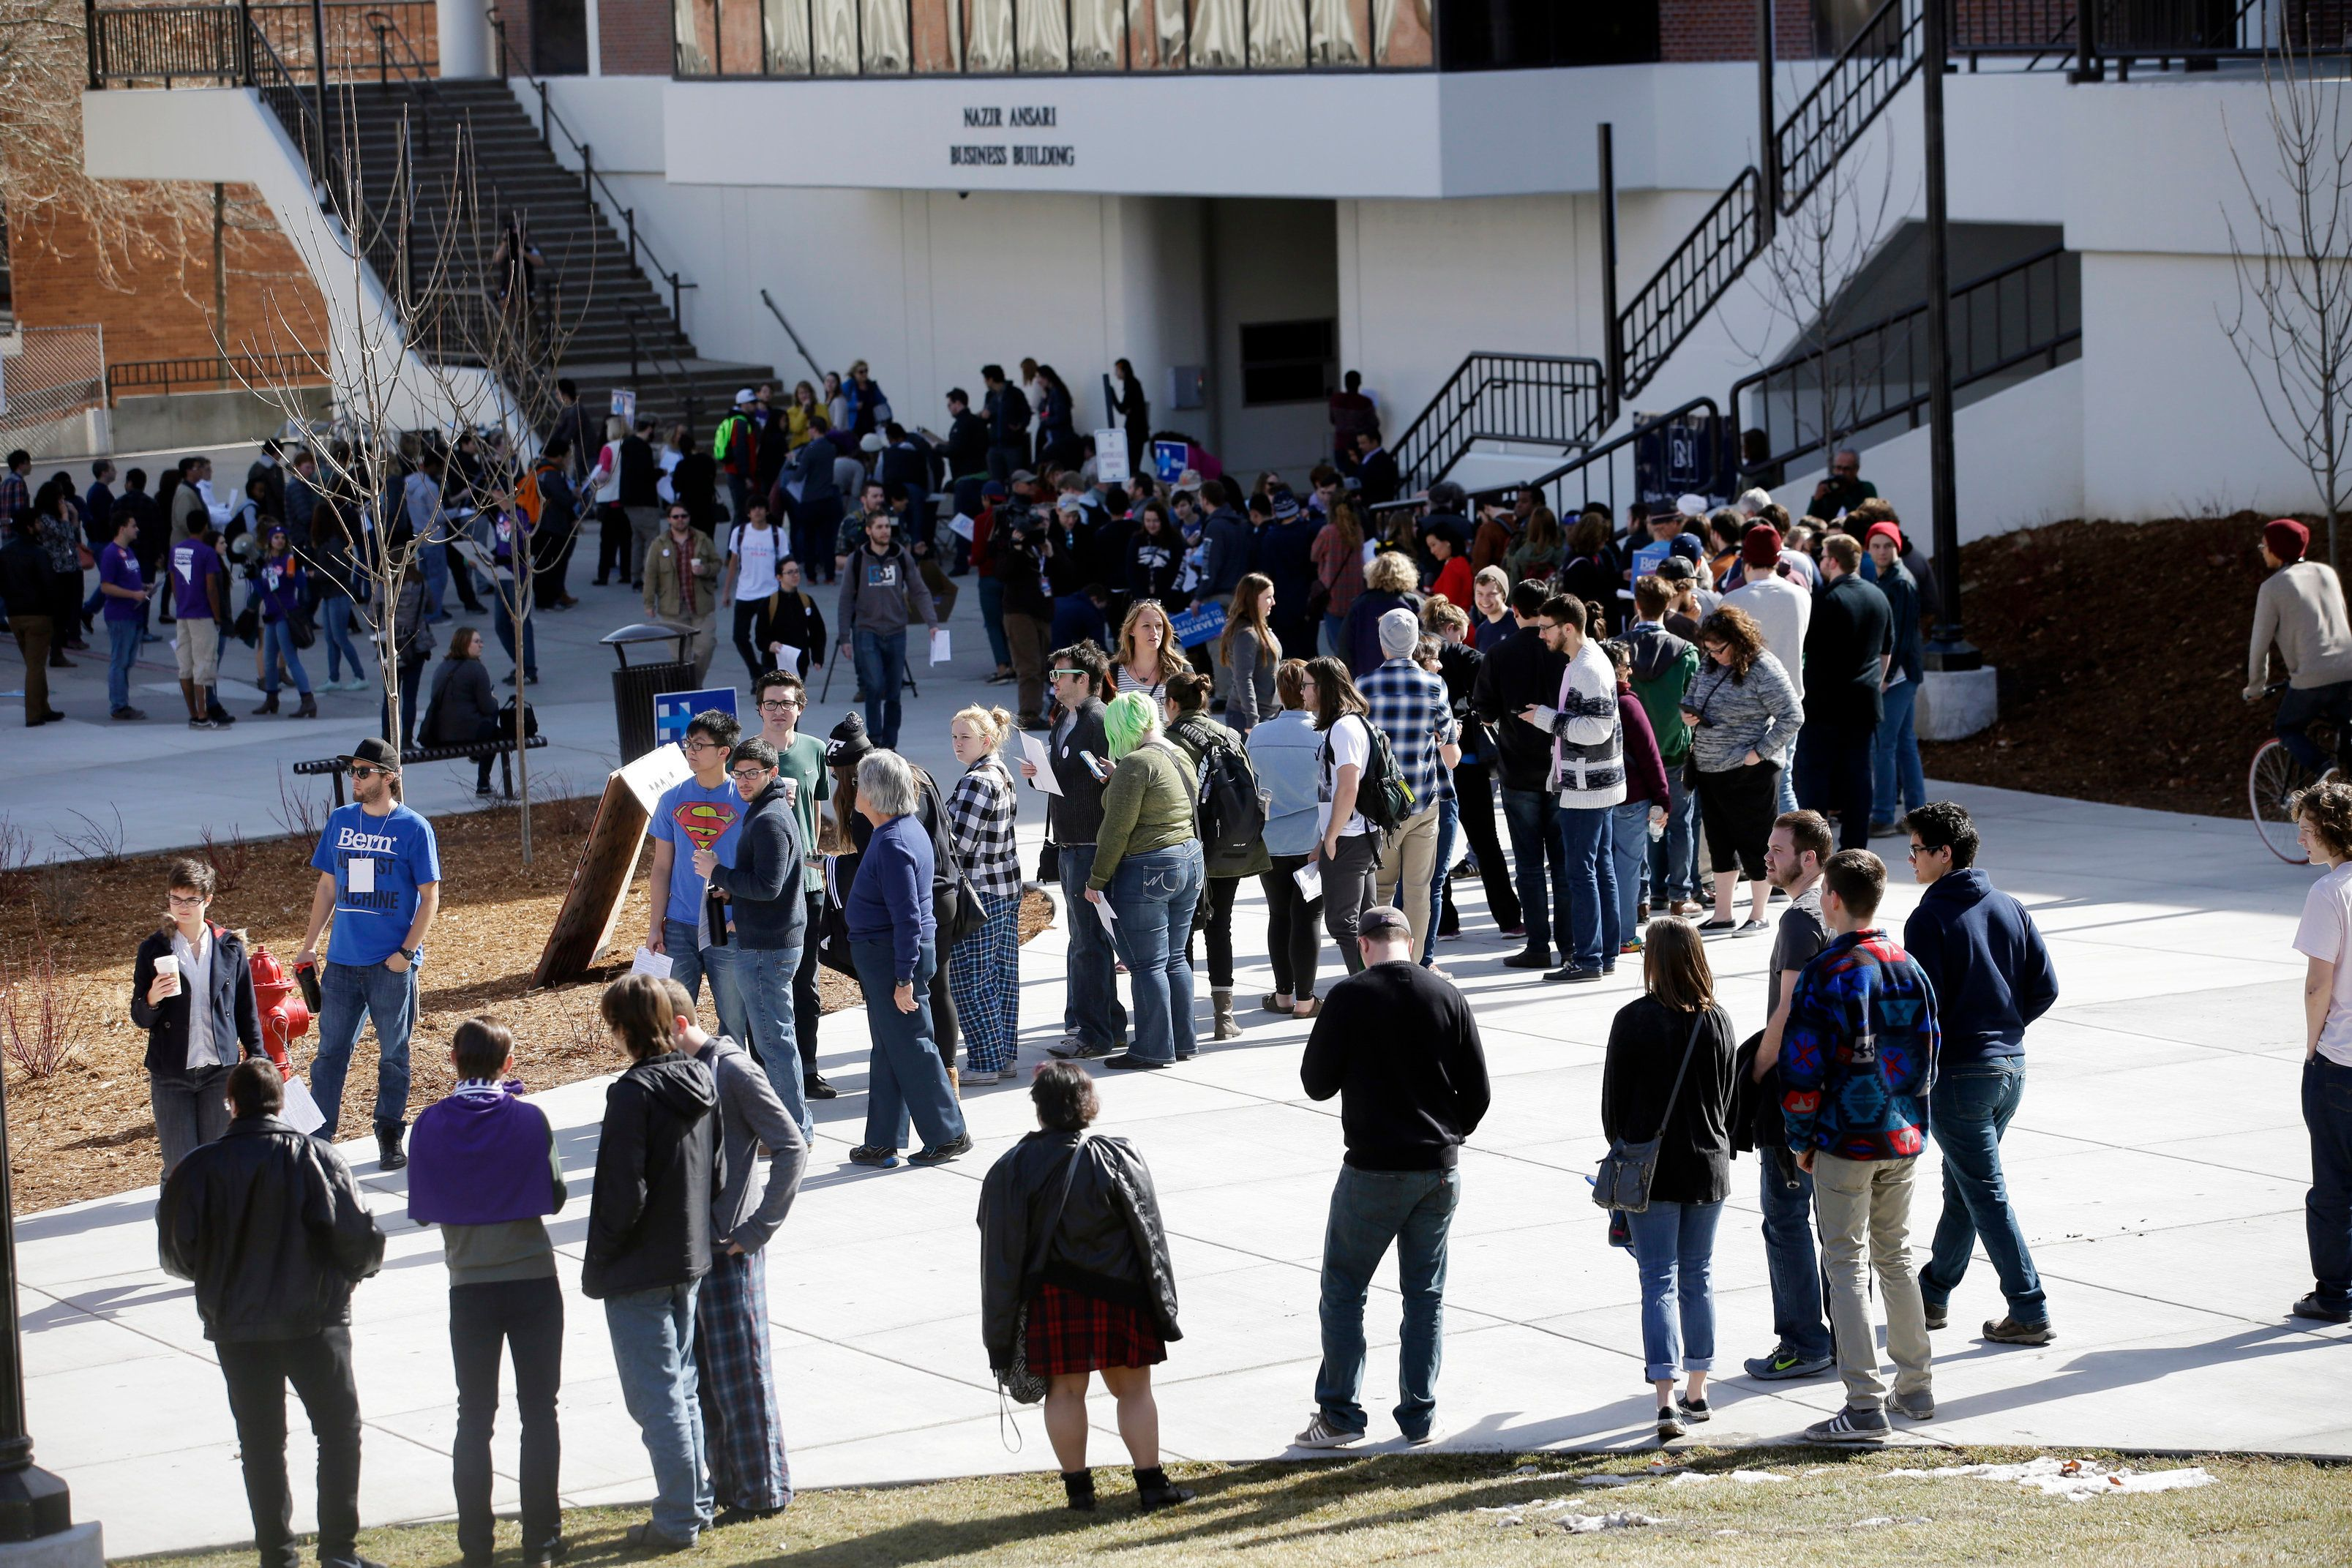 FILE - In this Feb. 20, 2016 file photo people line up to participate in the Democratic caucus at the University of Nevada in Reno, Nev. Nevada Democrats are proposing major changes to their presidential caucuses that could dramatically alter the way candidates compete in the state, opening the process to an early-vote and virtual participation. (AP Photo/Marcio Jose Sanchez,File)